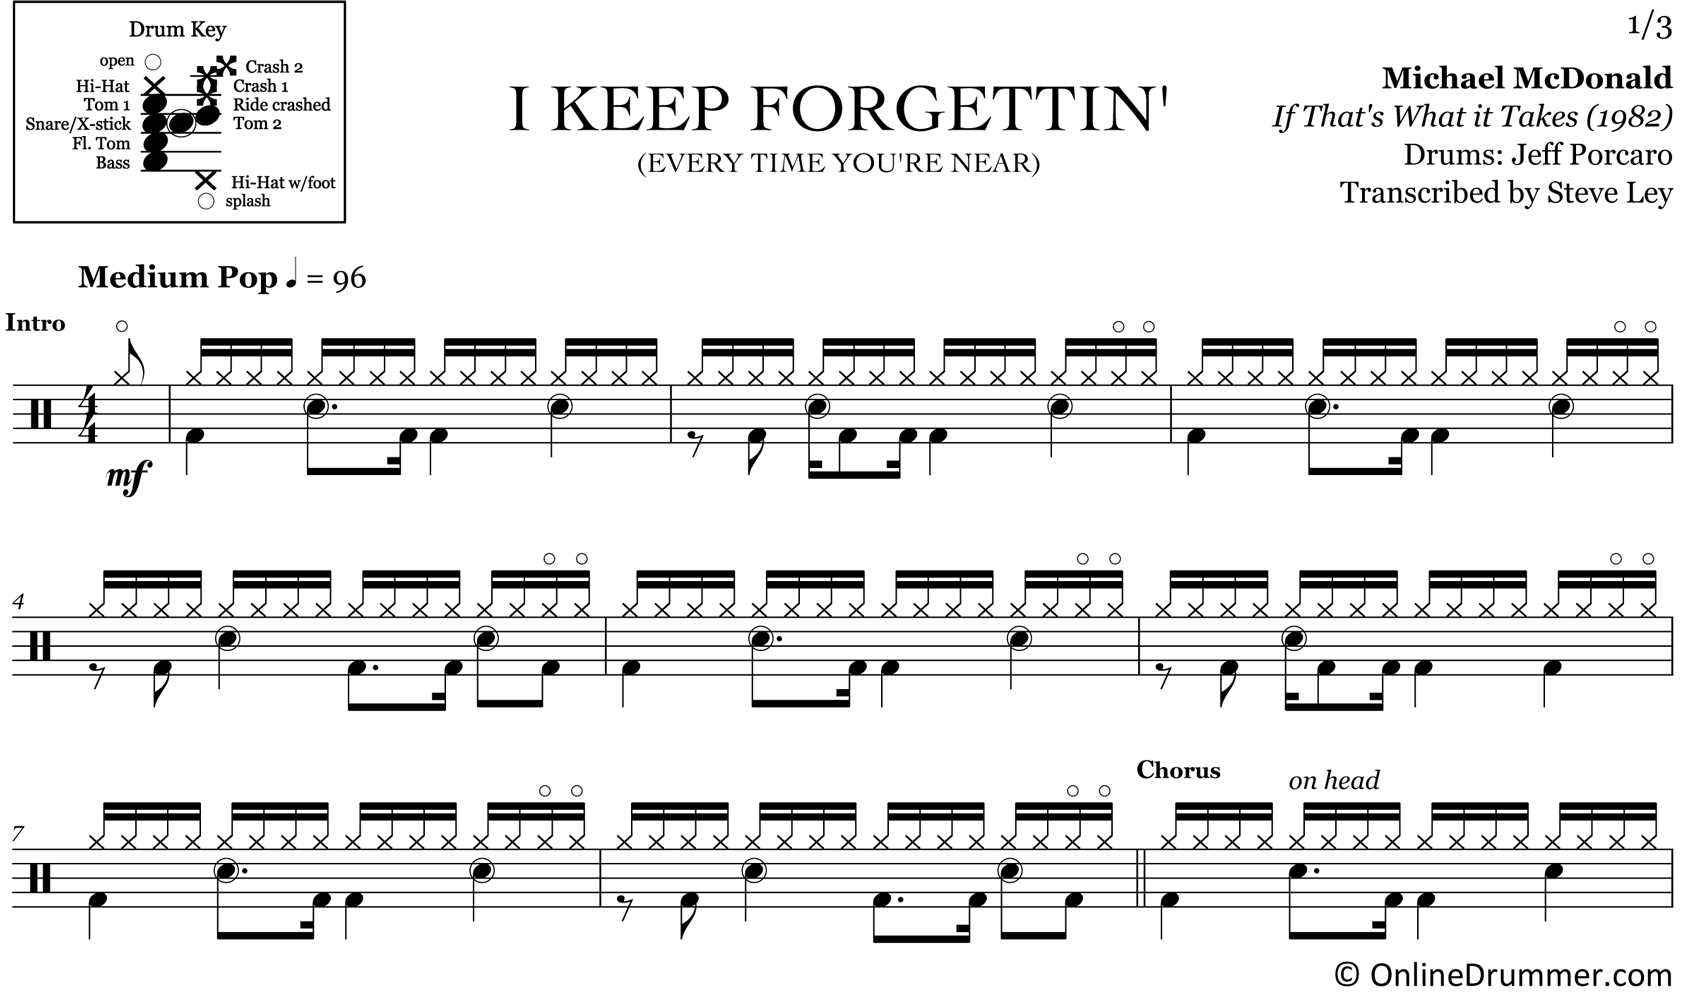 I Keep Forgettin' (Every Time You're Near) - Michael McDonald - Drum Sheet Music